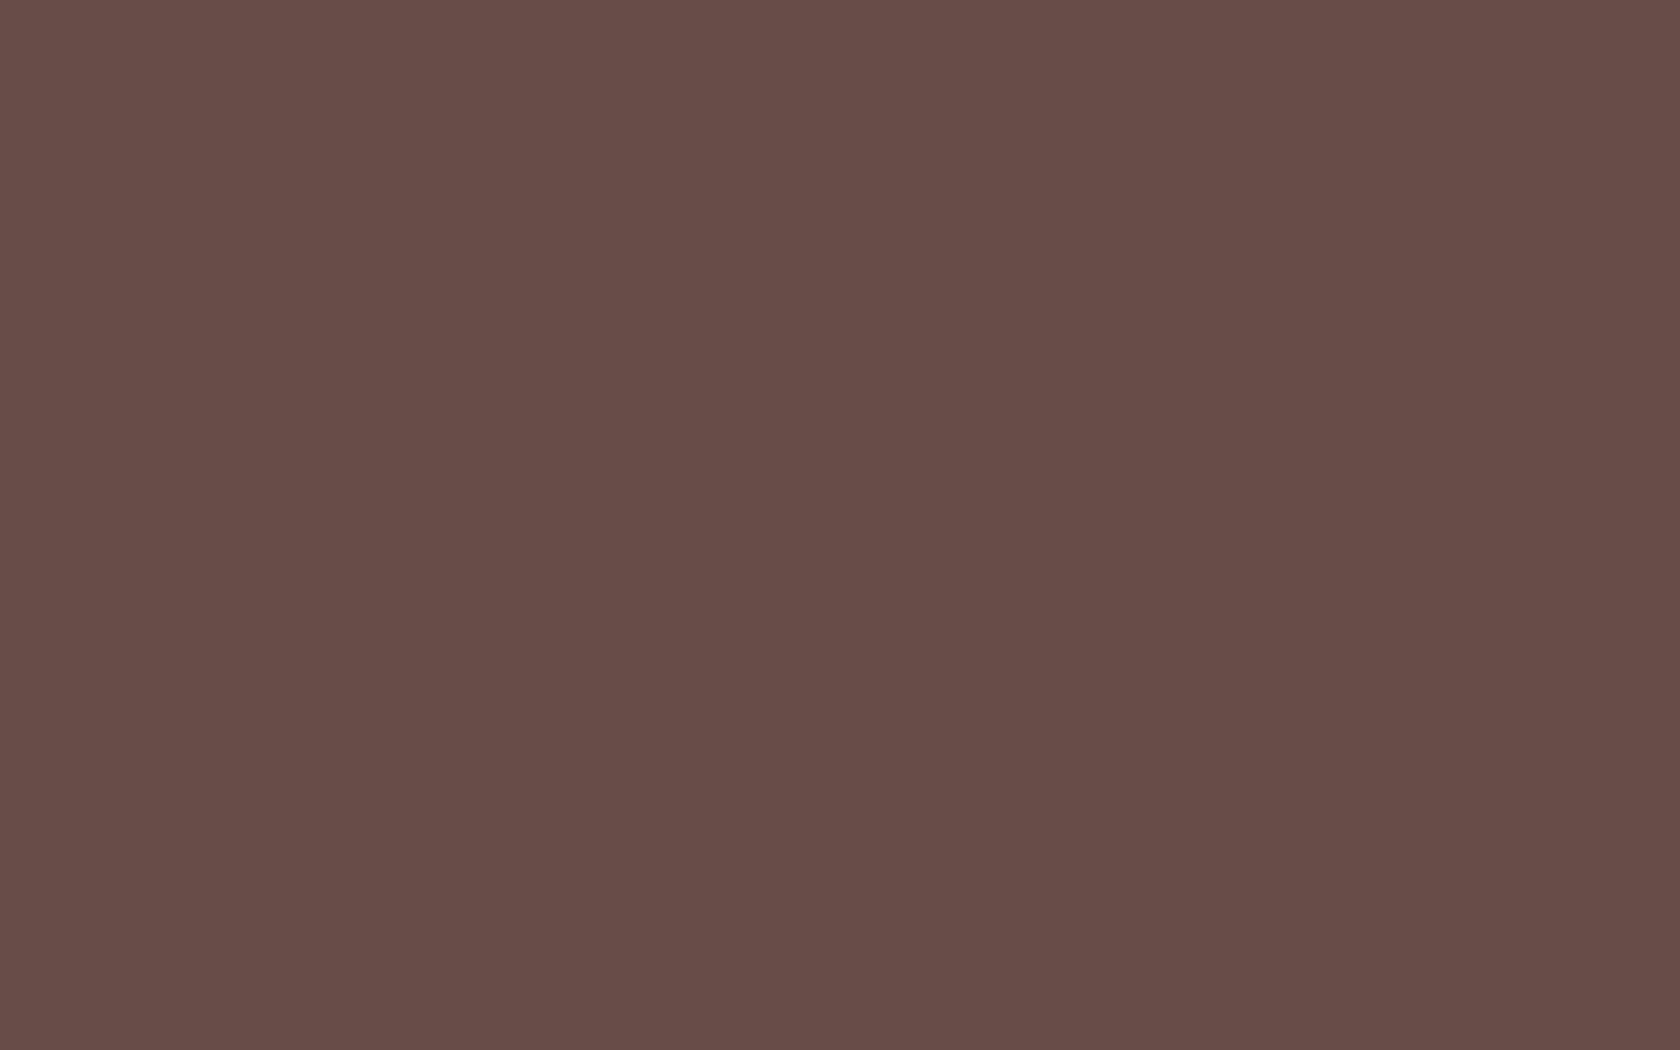 1680x1050 Medium Taupe Solid Color Background